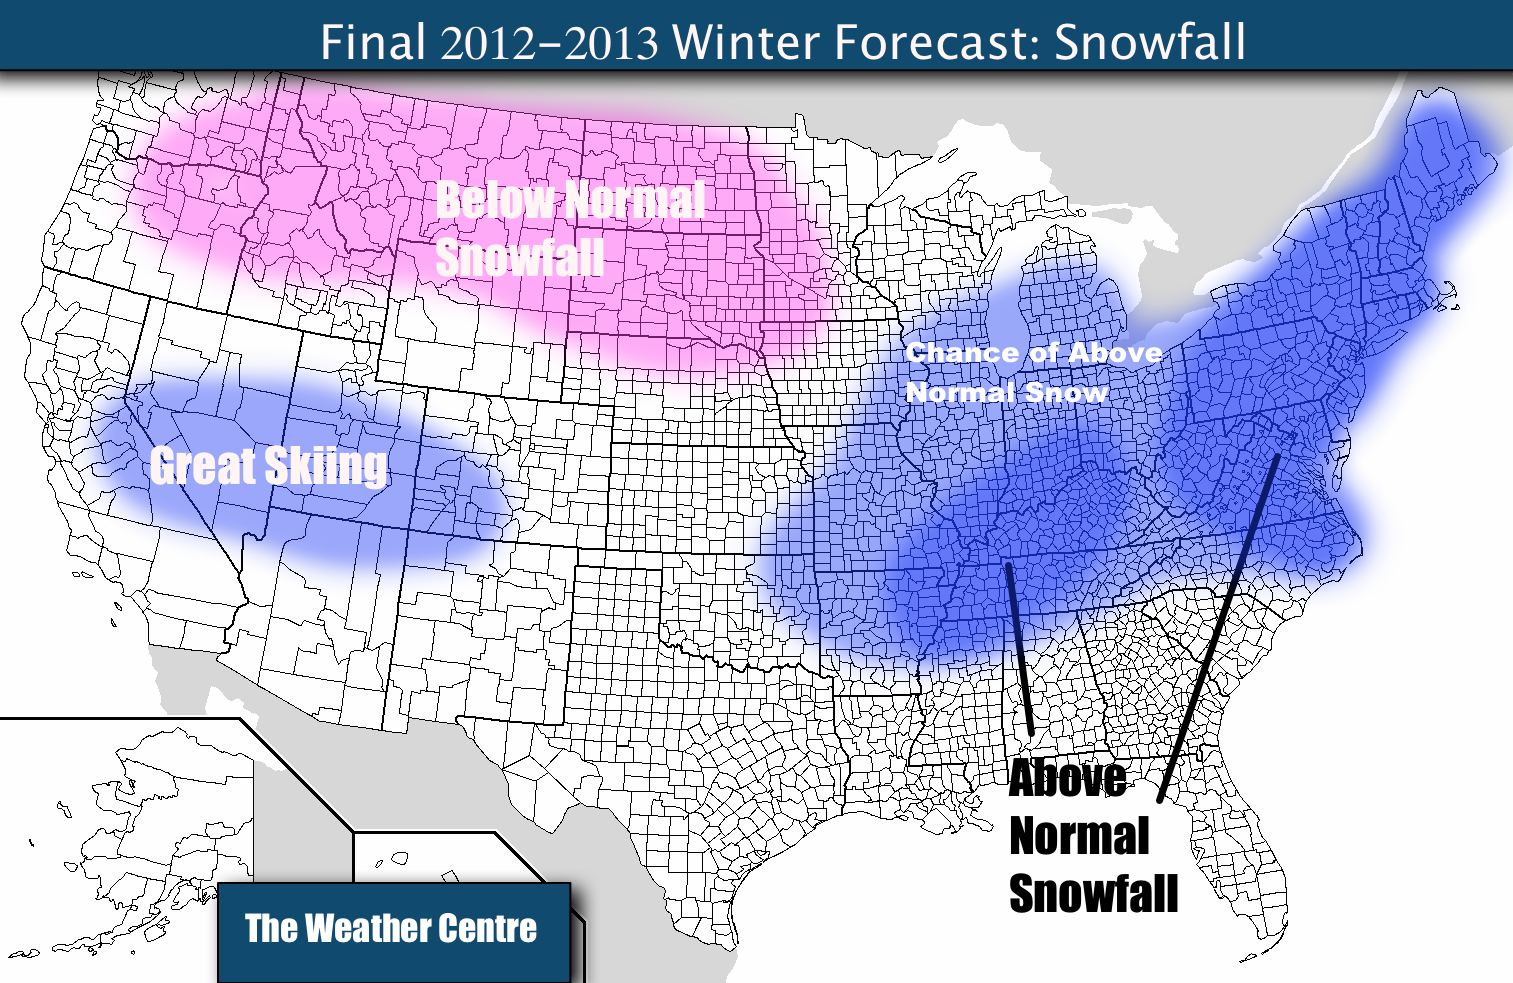 Today's Featured Post: Thoughts on ENSO, East Coast Snowstorms and